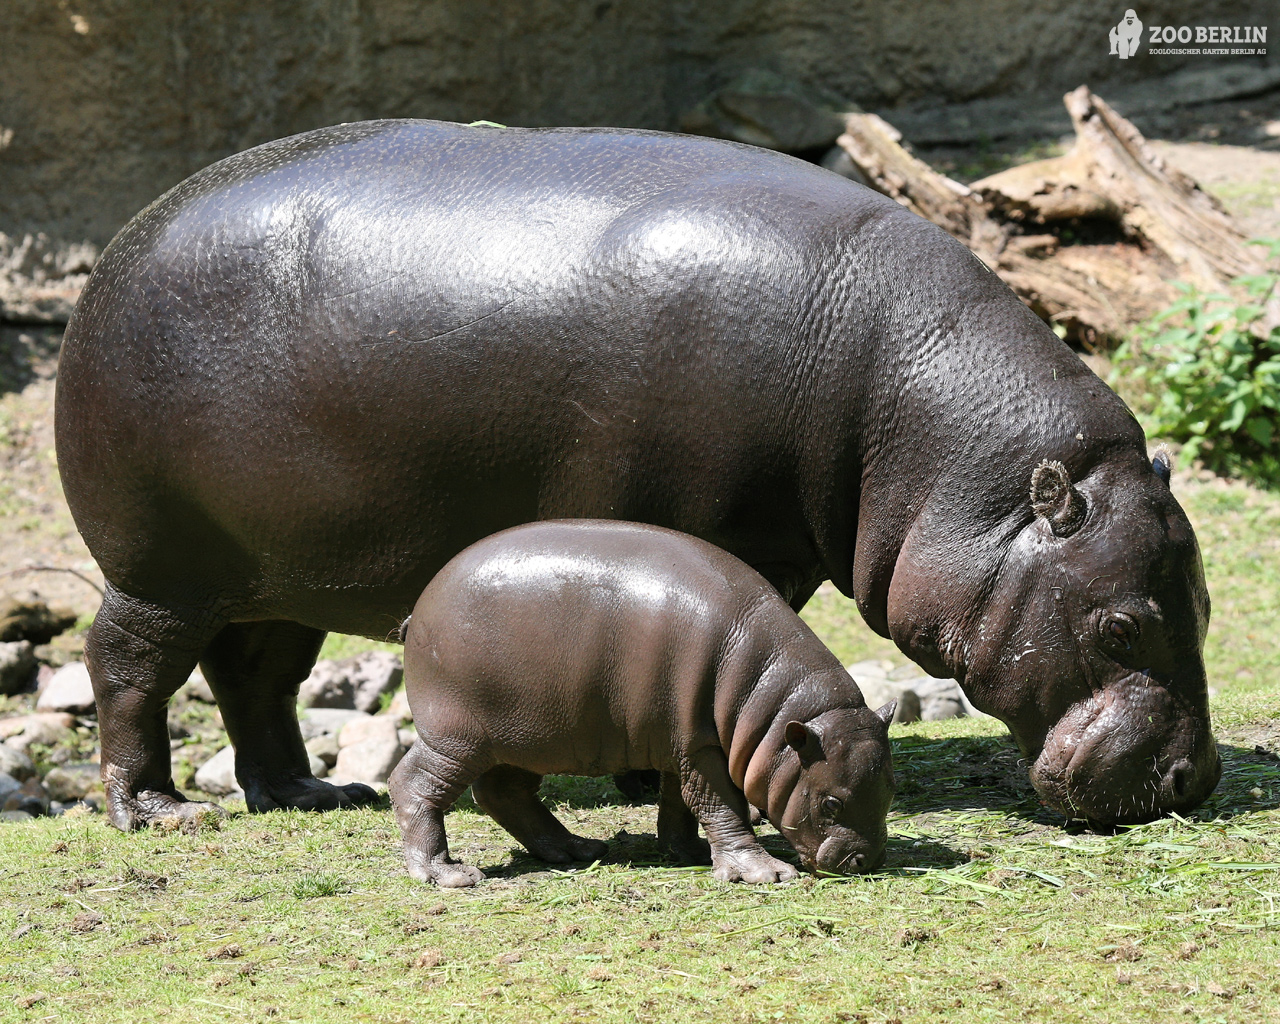 Hippopotamus and a Baby Cub 858.06 Kb